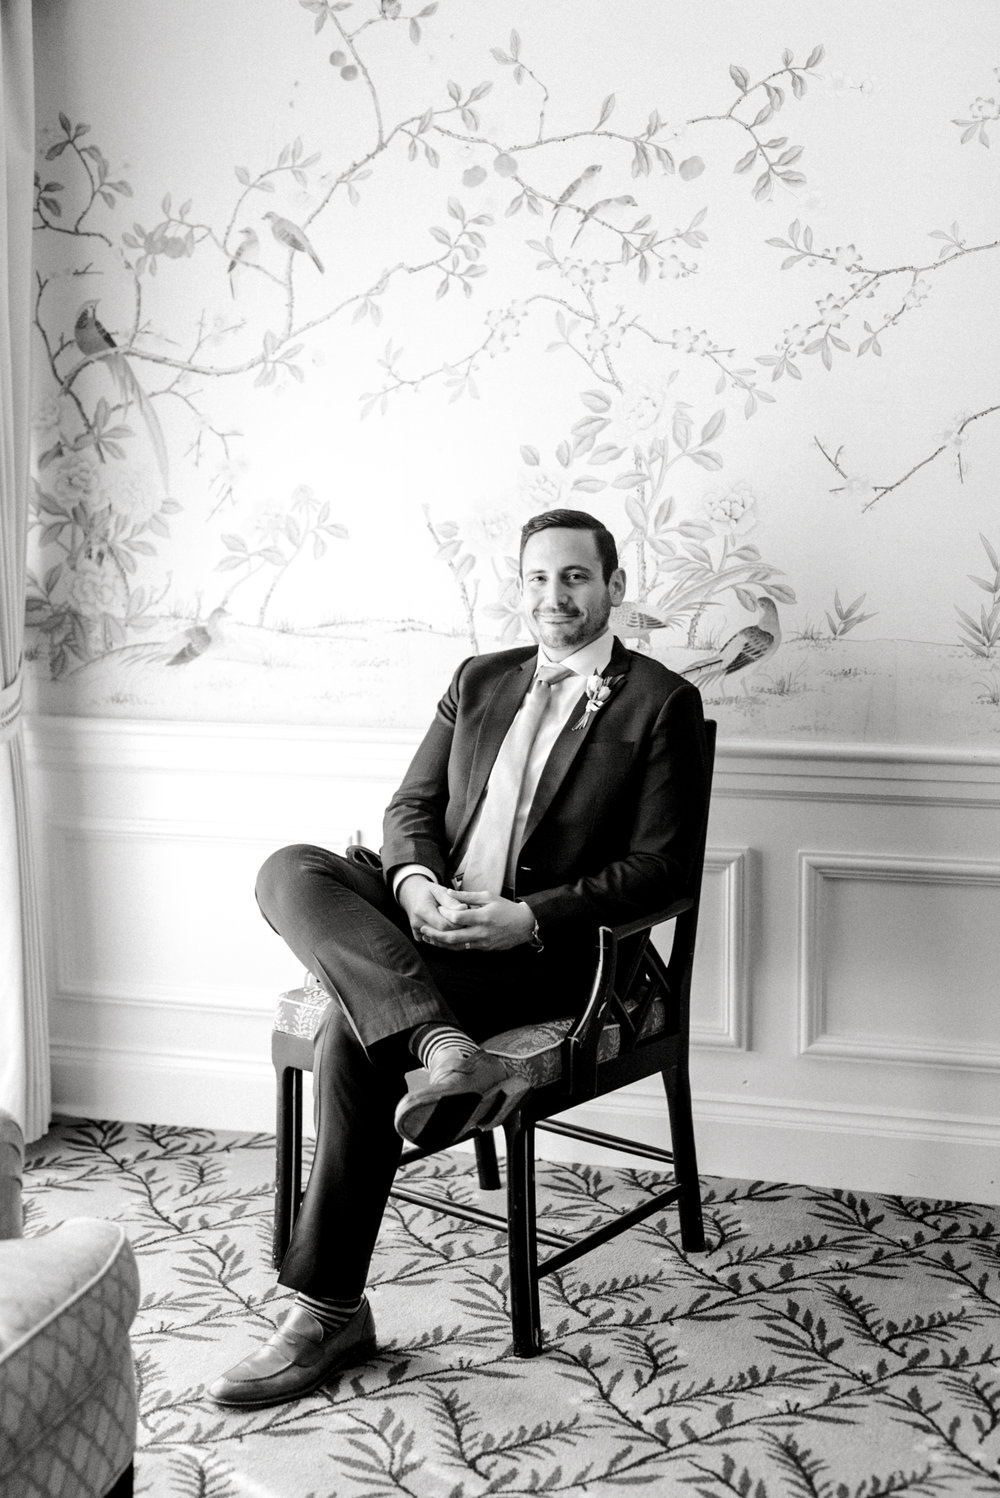 The handsome groom relaxing in a patterned room at the Baltimore Country Club the morning of his wedding.